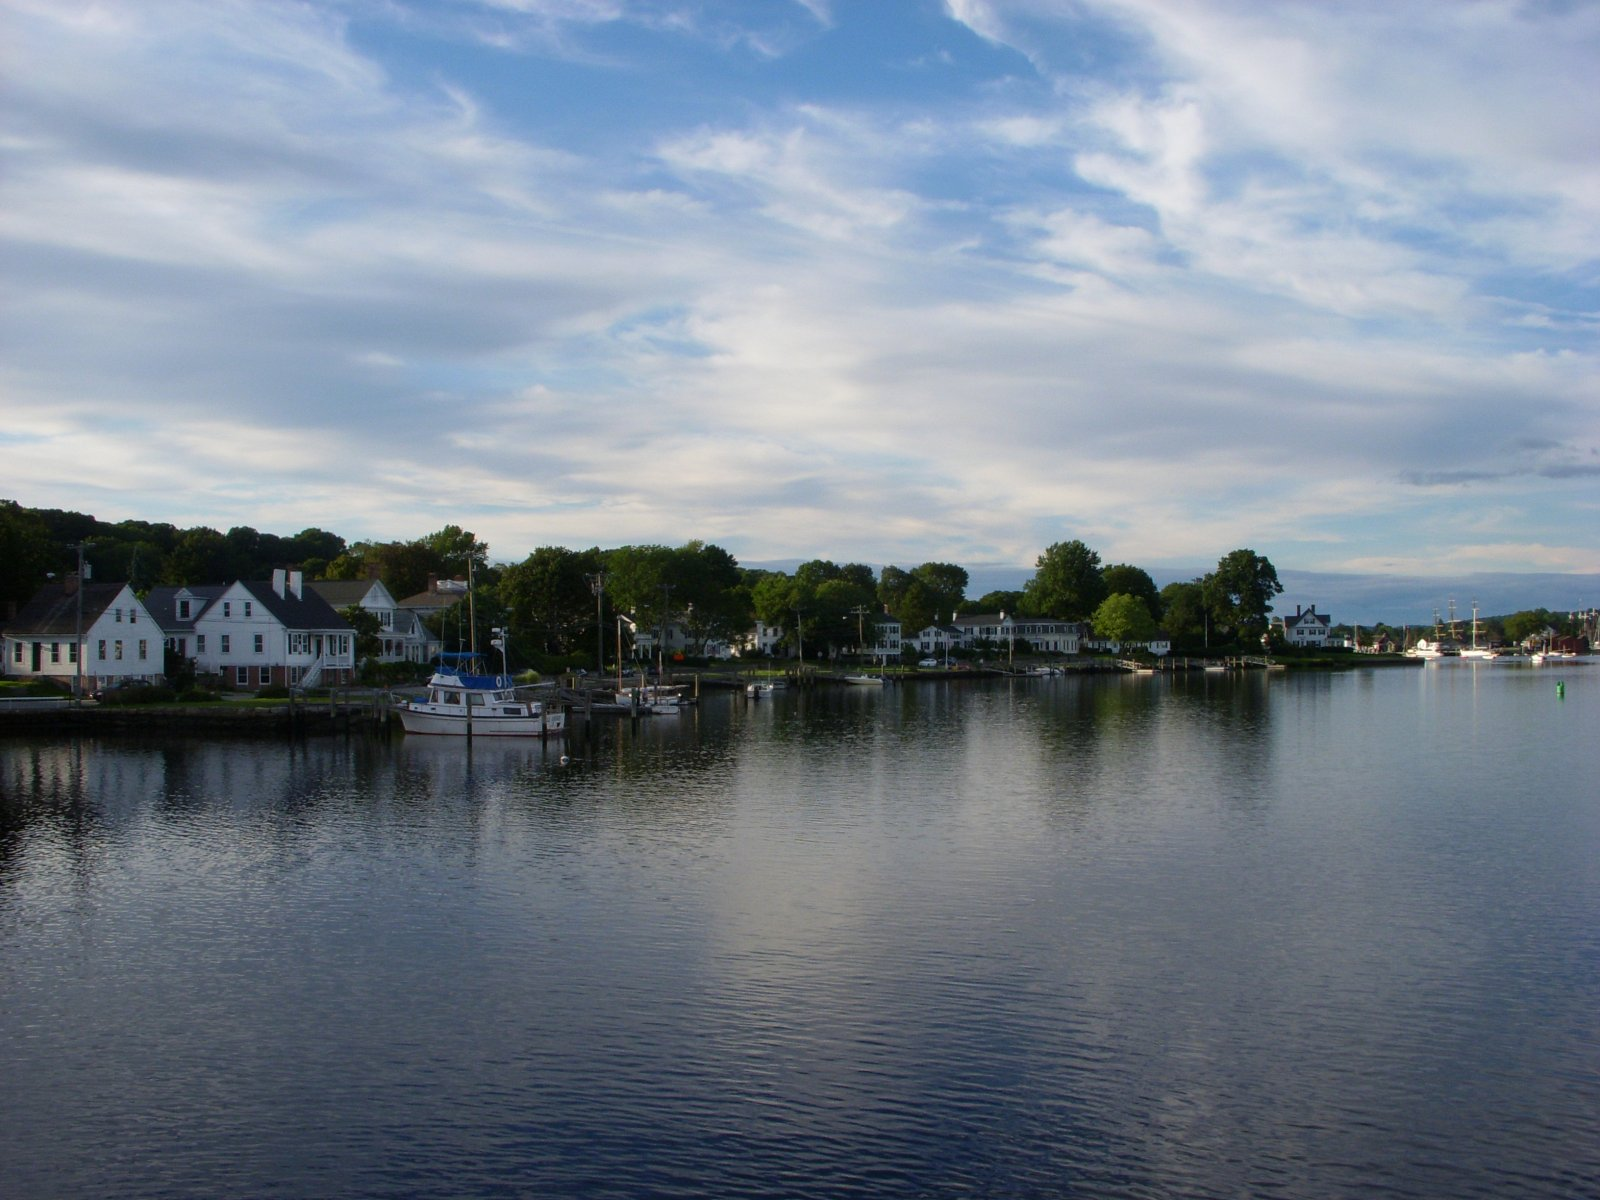 Click image for larger version  Name:Mystic, CT. Aug 2011 036.jpg Views:72 Size:249.8 KB ID:137941